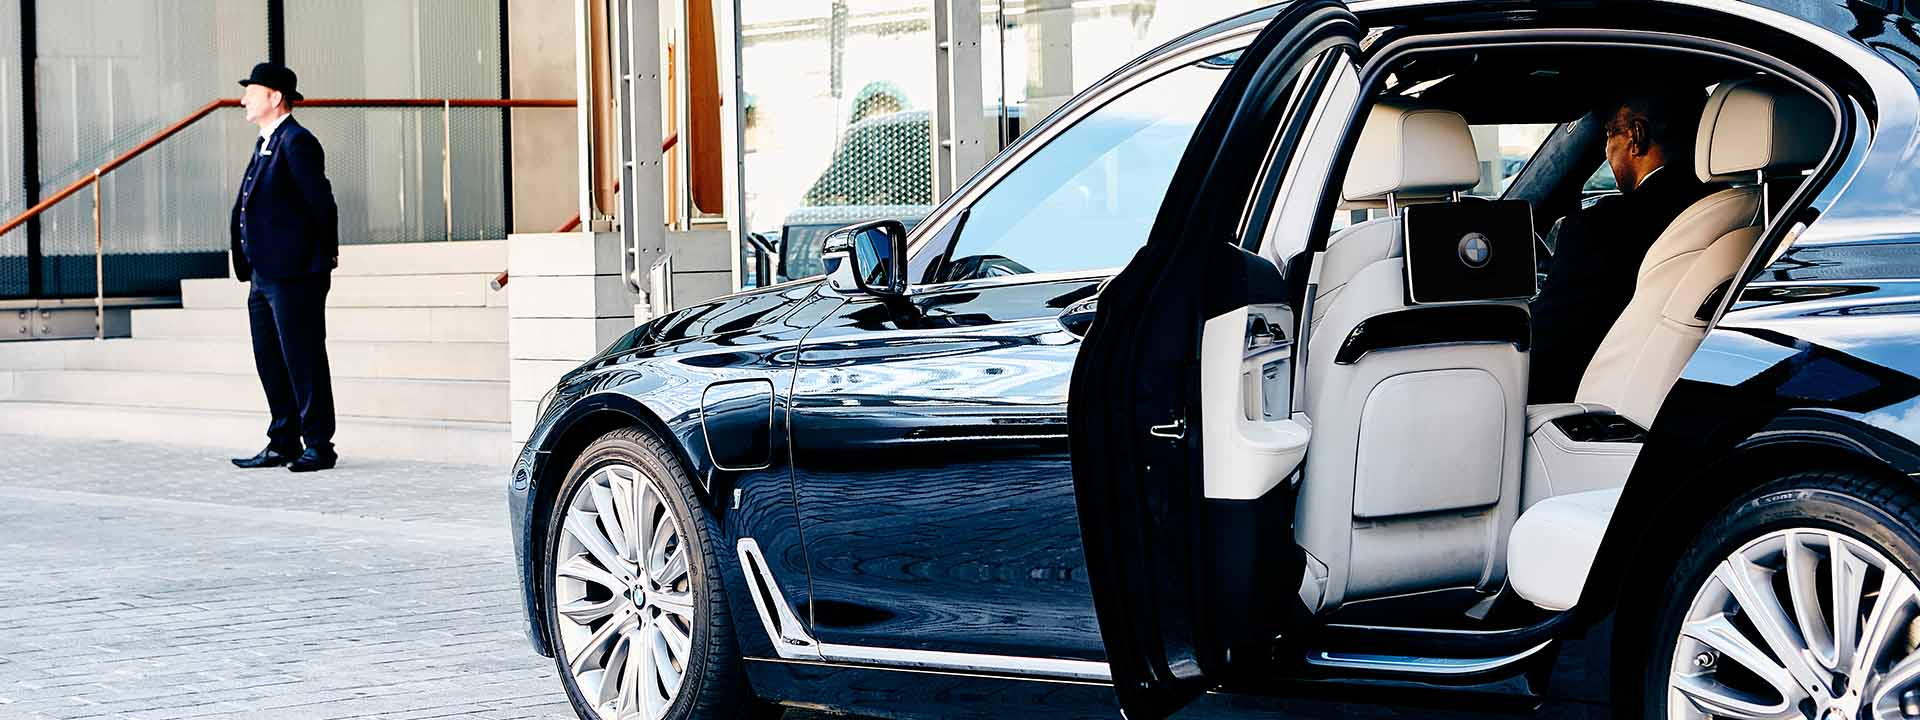 Luxury Airport Transfer Chauffer Driven Service The